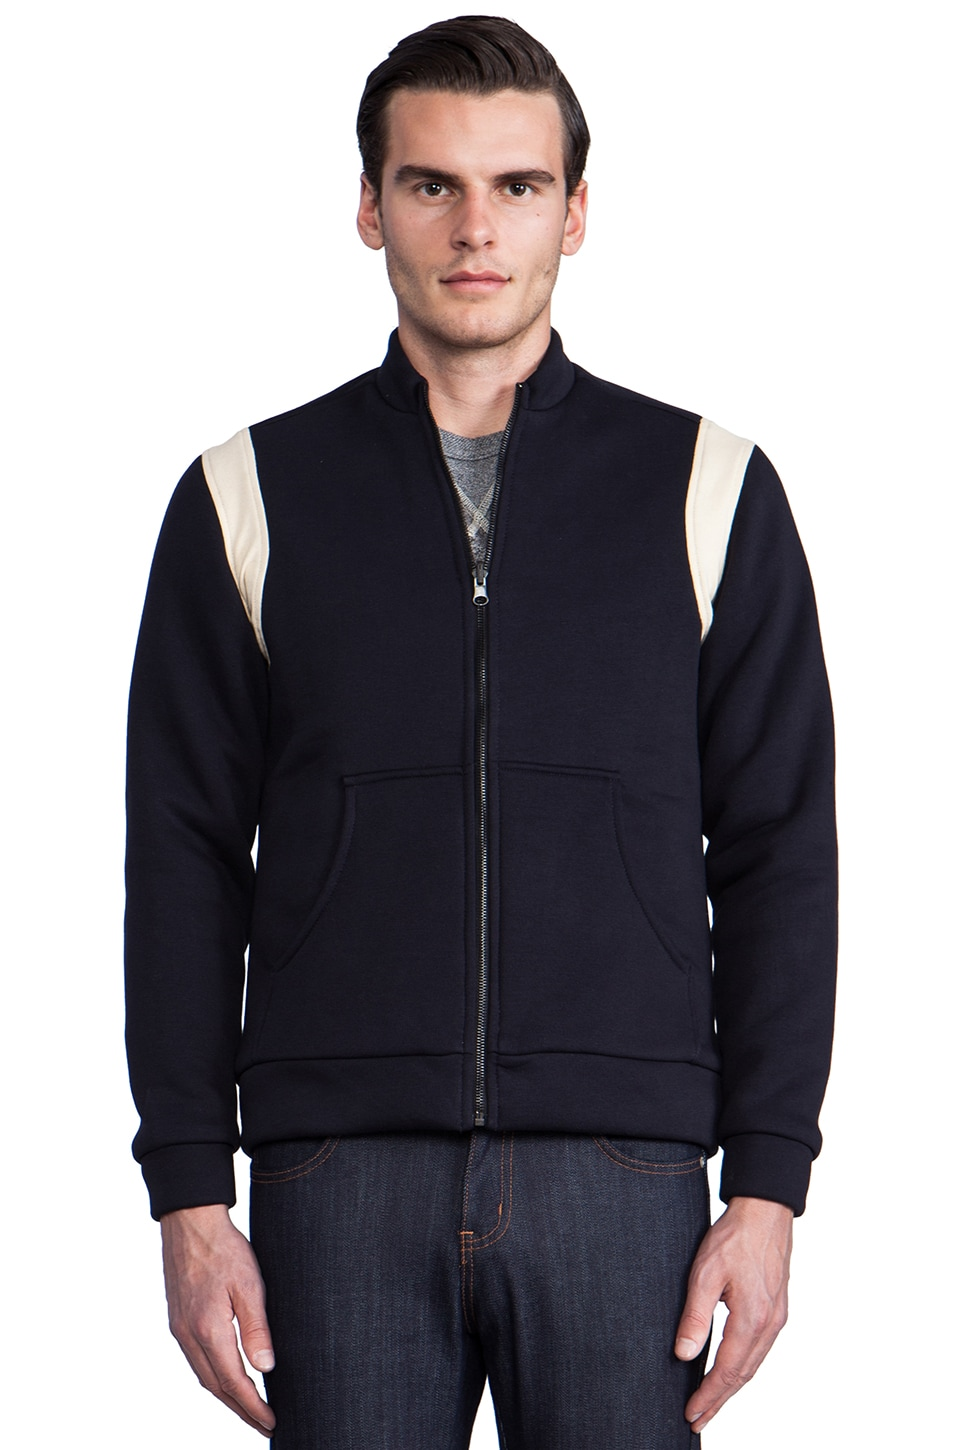 Still Good Caravage Jacket in Navy